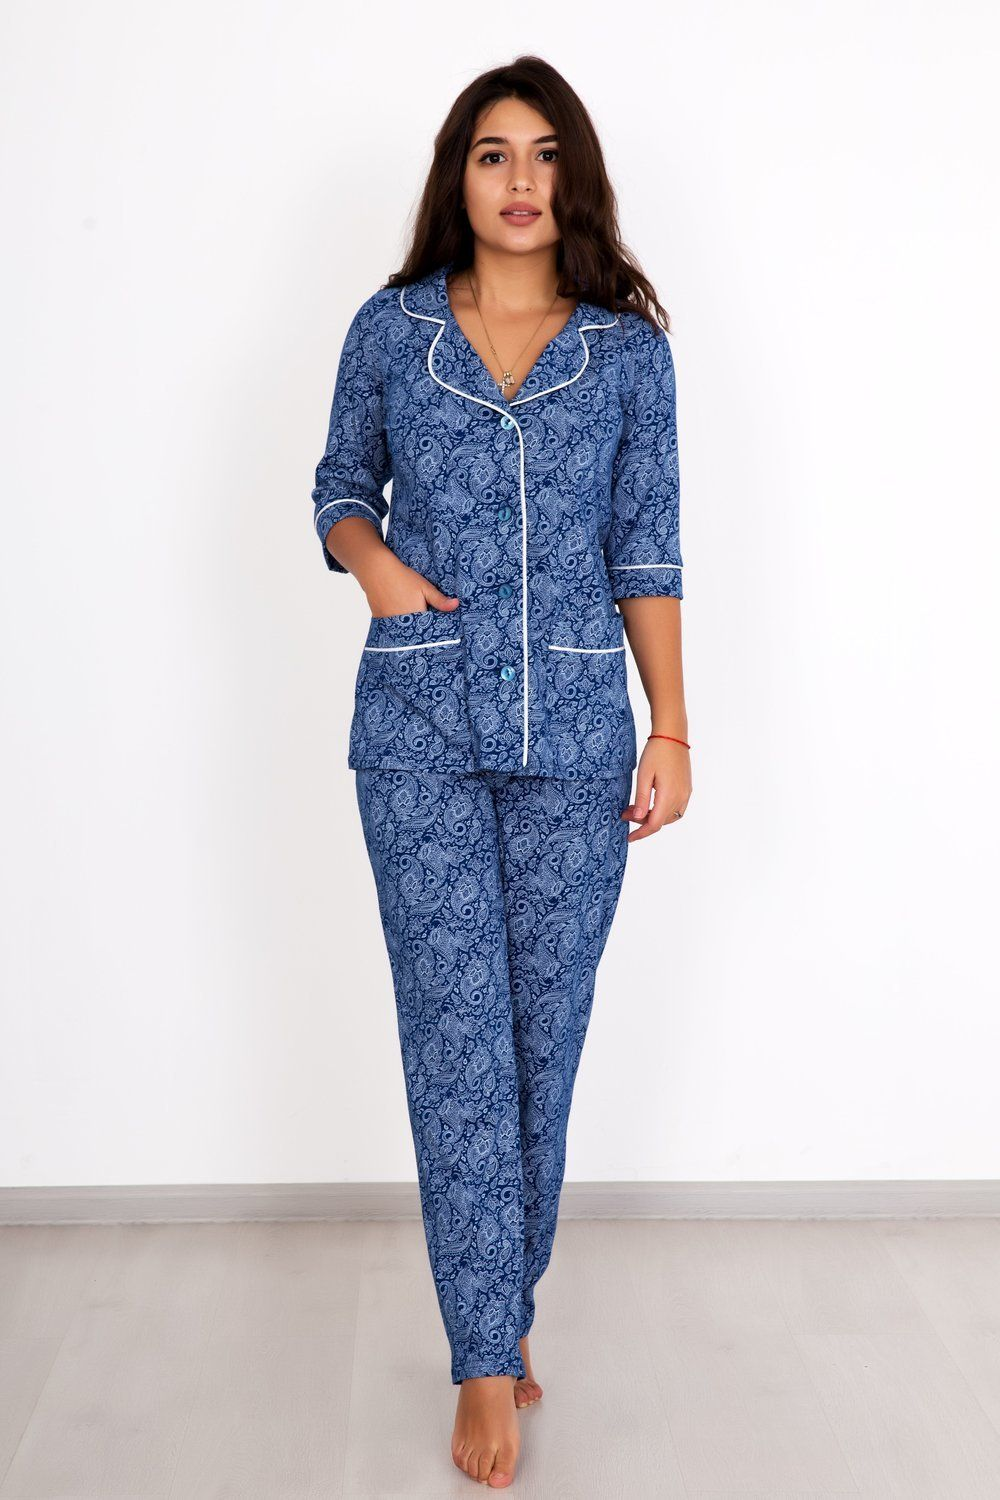 Lika Dress / Pajamas Deborah Art. 5176